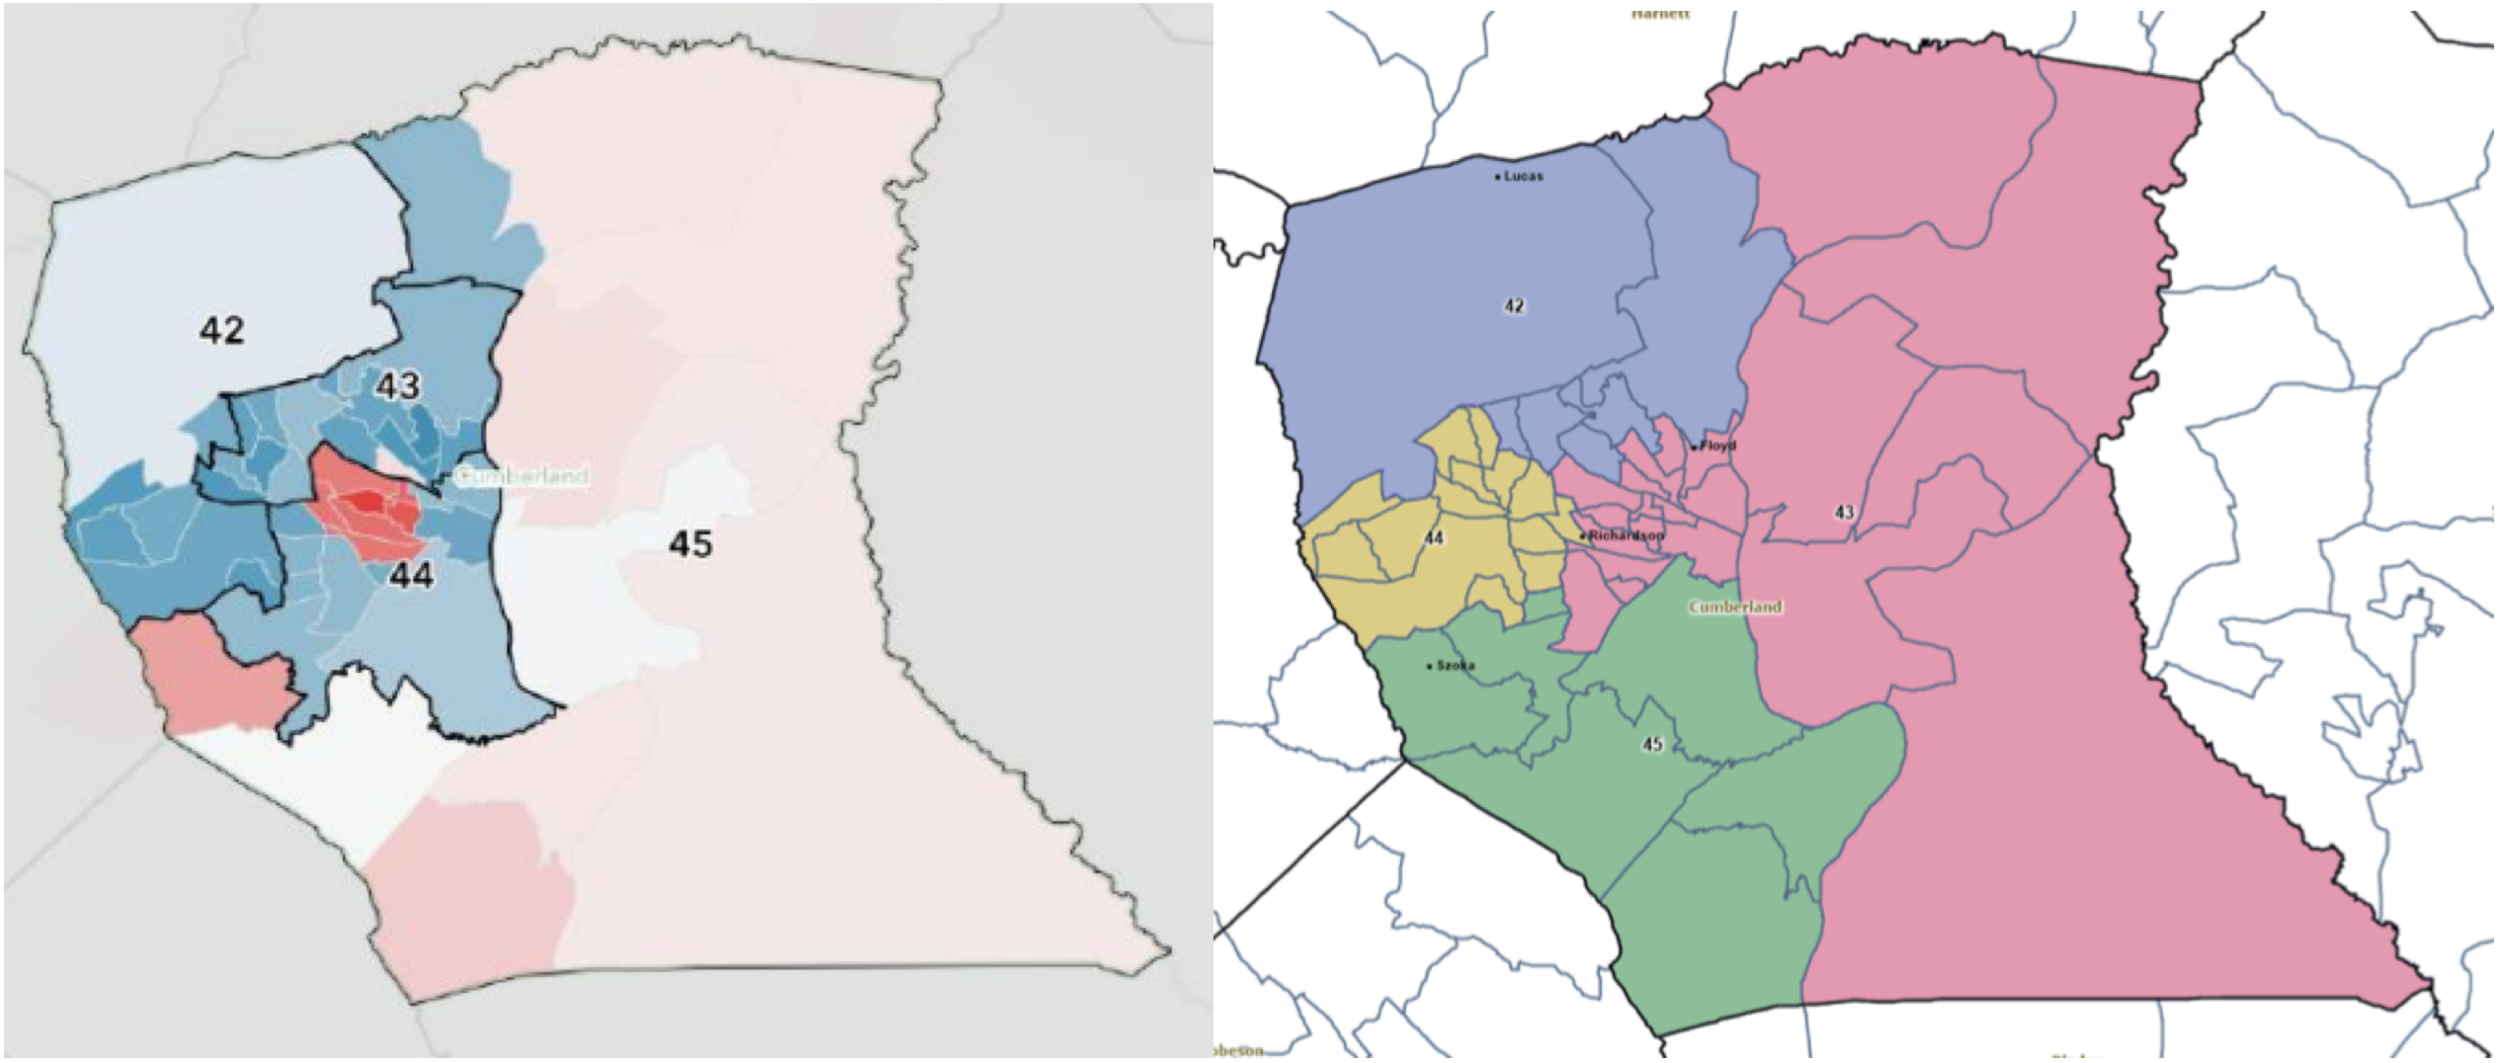 Partisan map of current district boundaries in Cumberland County v. Adopted map for Cumberland County